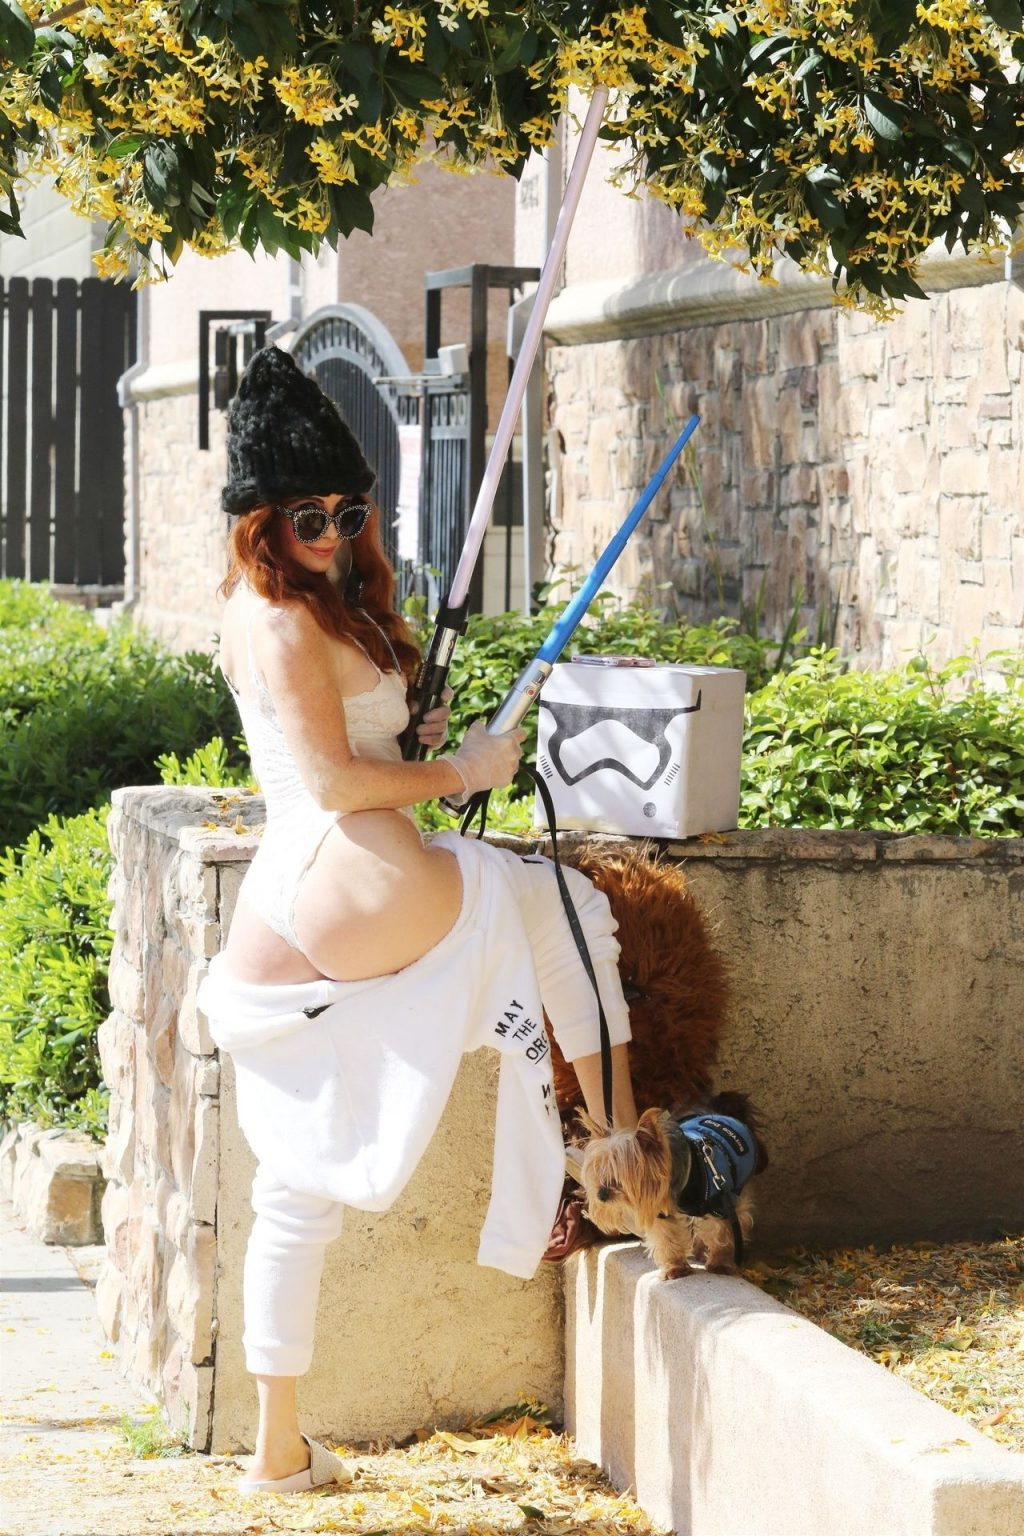 Phoebe Price Shows Her Jedi Butt and Tits (9 Photos)